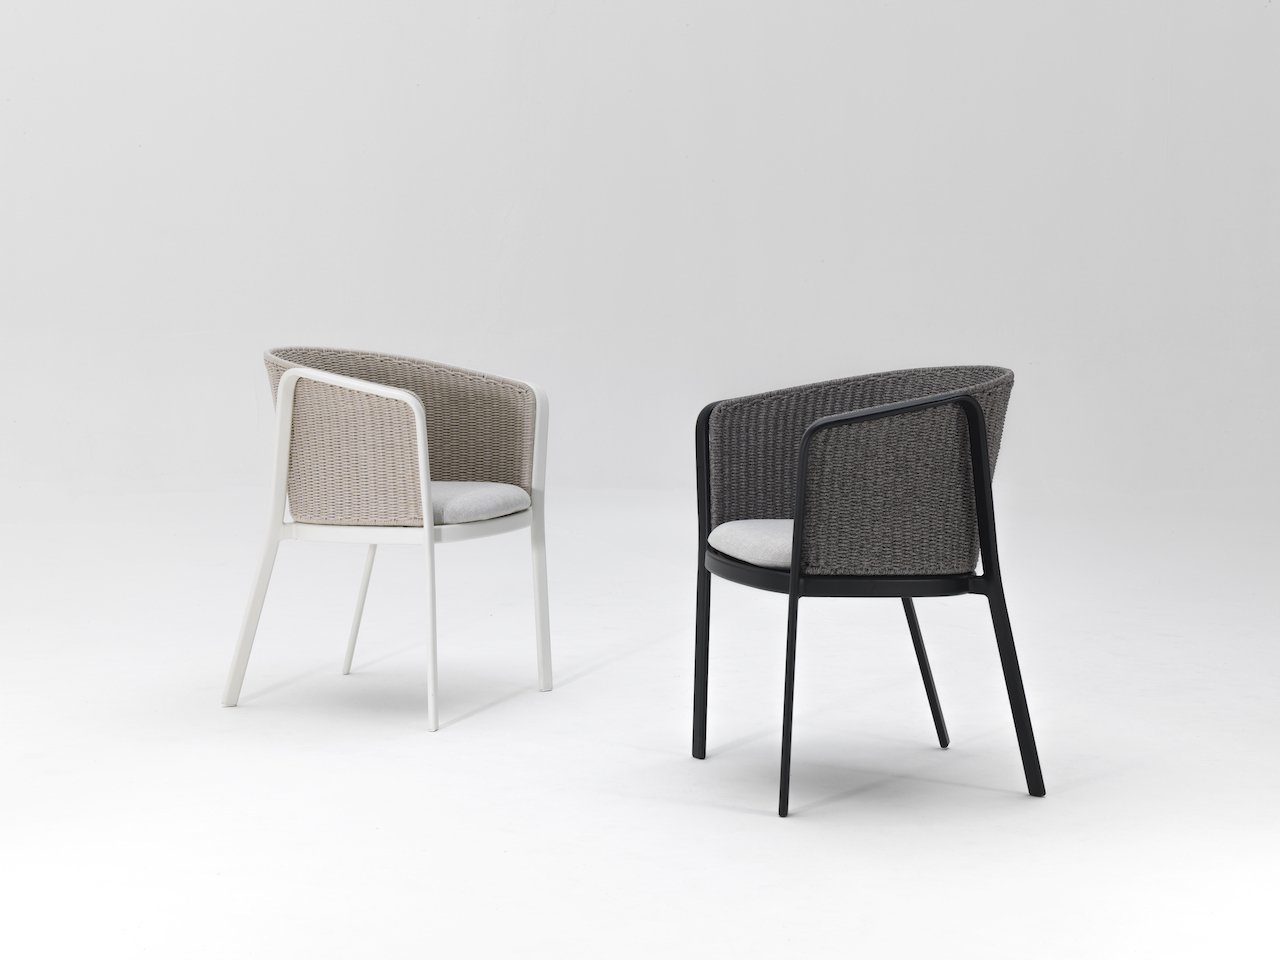 The dining chair version of the Carousel armchair. Design Sebastian Herkner 2019, Emu.